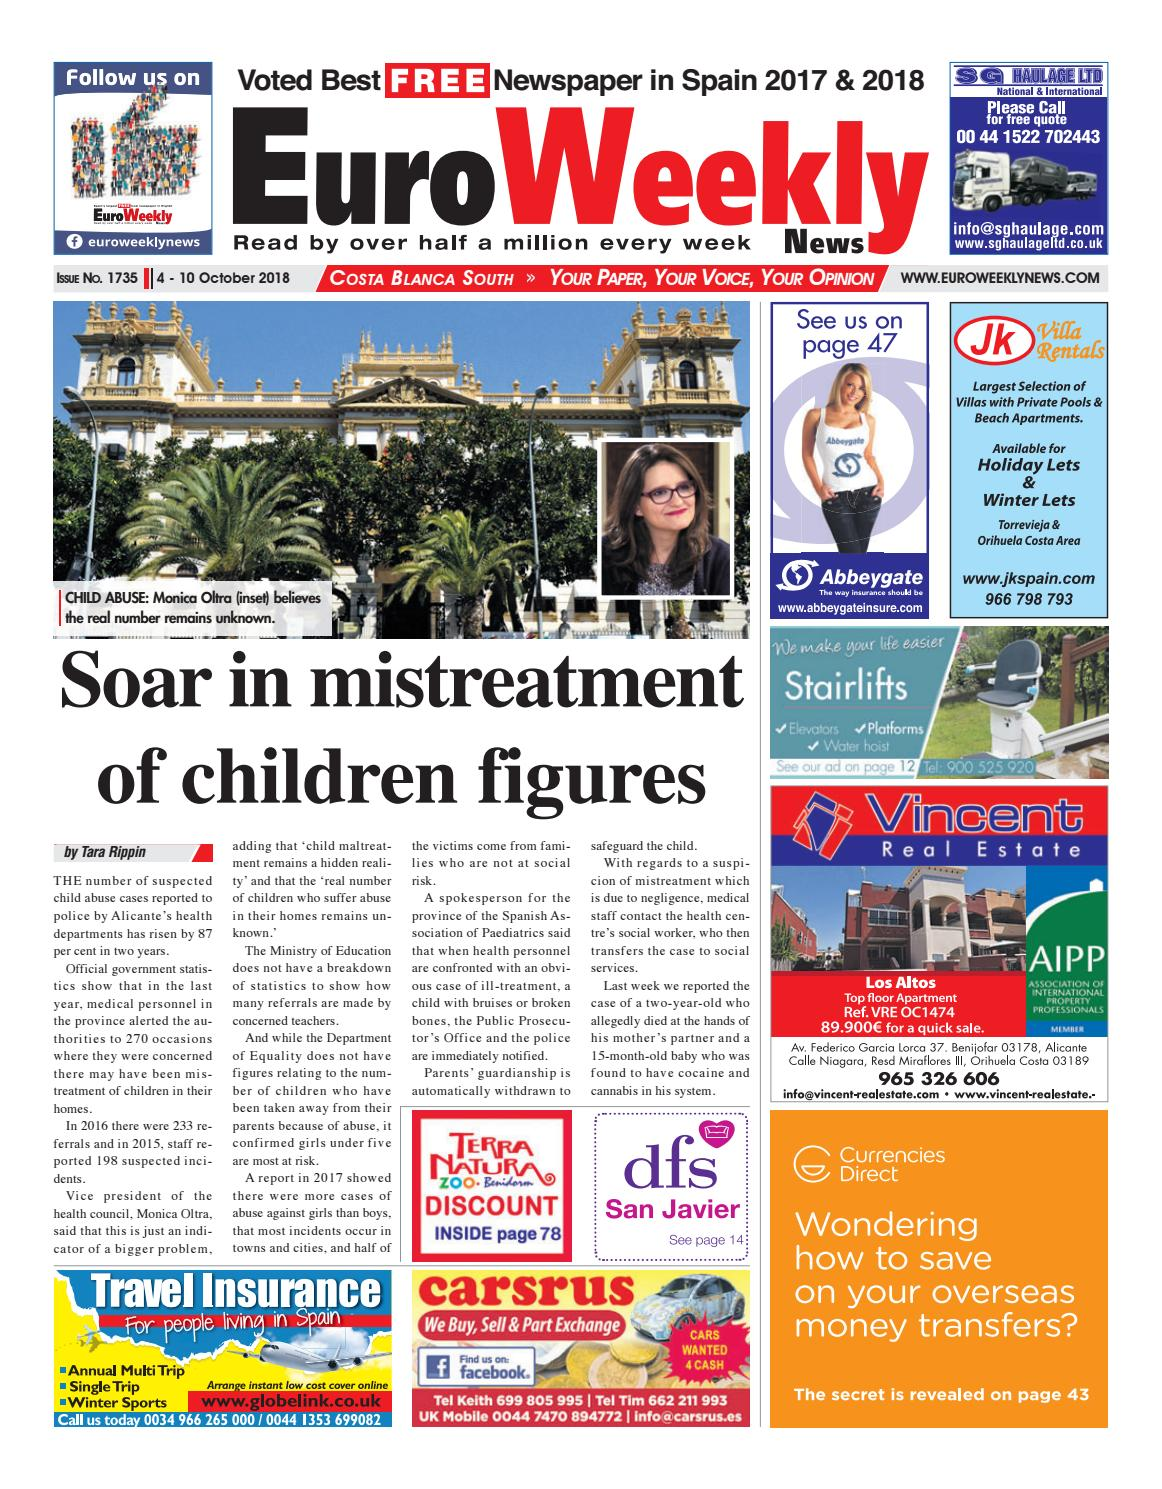 b48b3966ce60d1 Euro Weekly News - Costa Blanca South October 4 - 10 2018 Issue 1735 by  Euro Weekly News Media S.A. - issuu